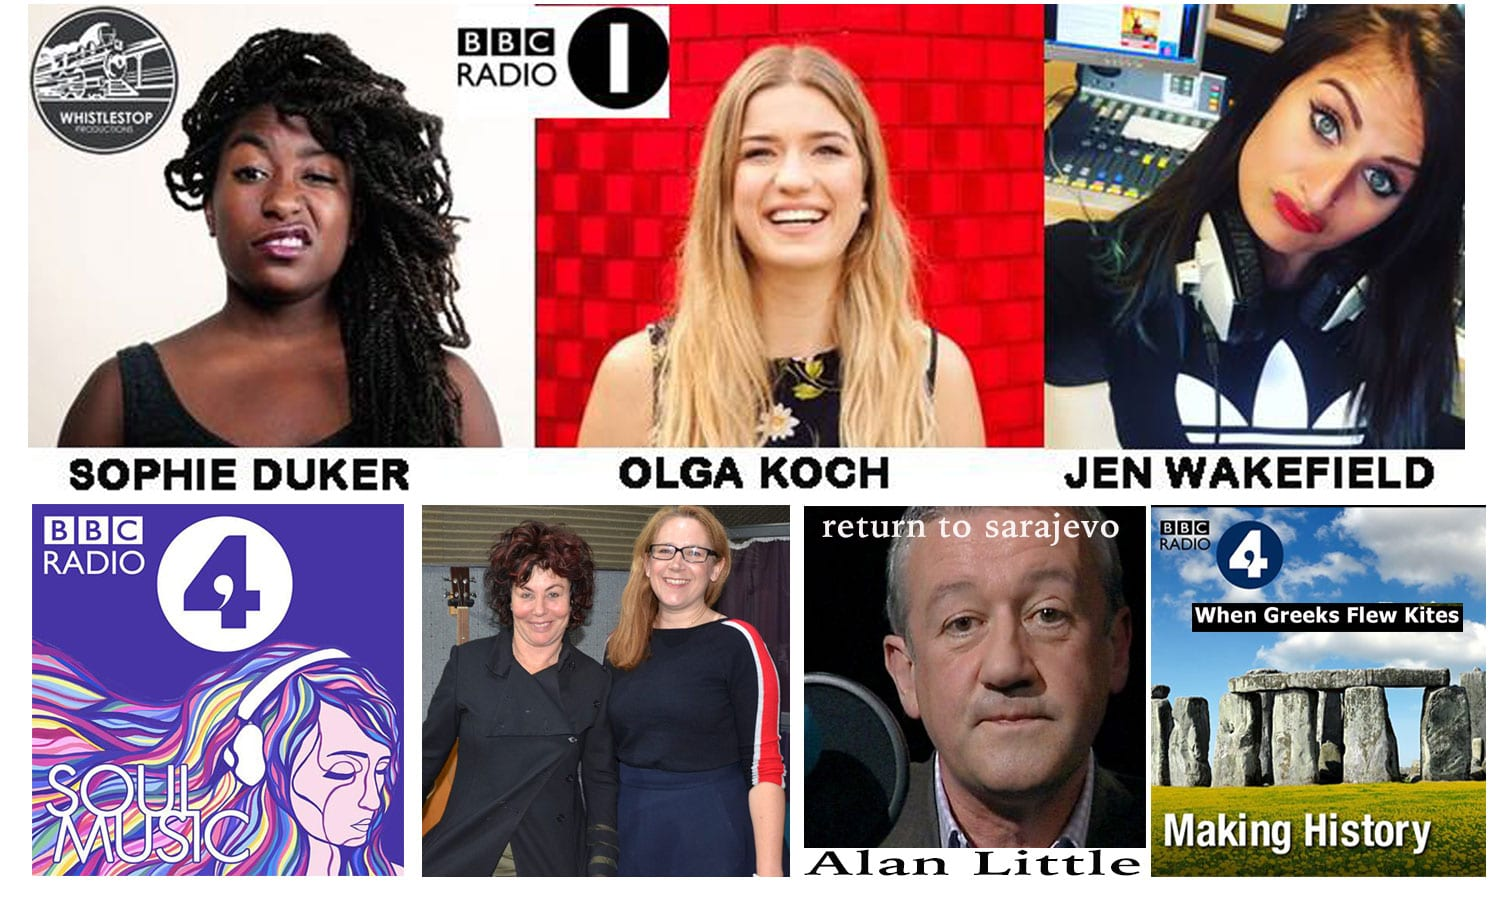 bbc radio projects